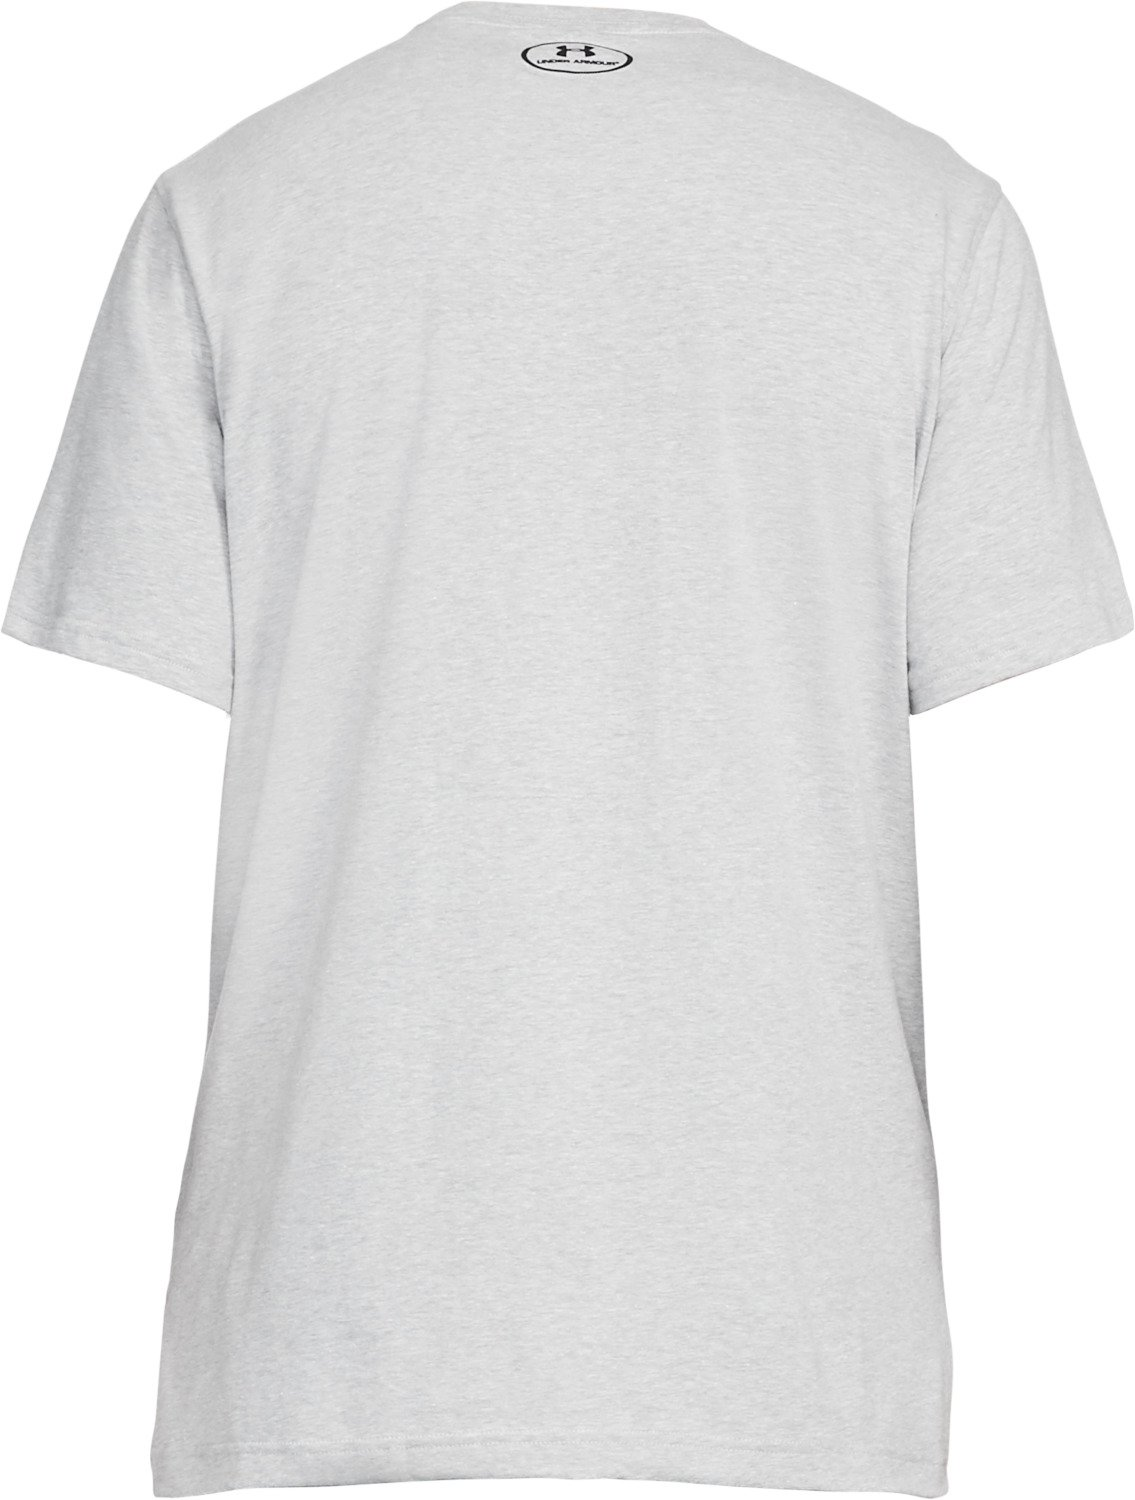 Under Armour Men's Graphic Training T-shirt - view number 1